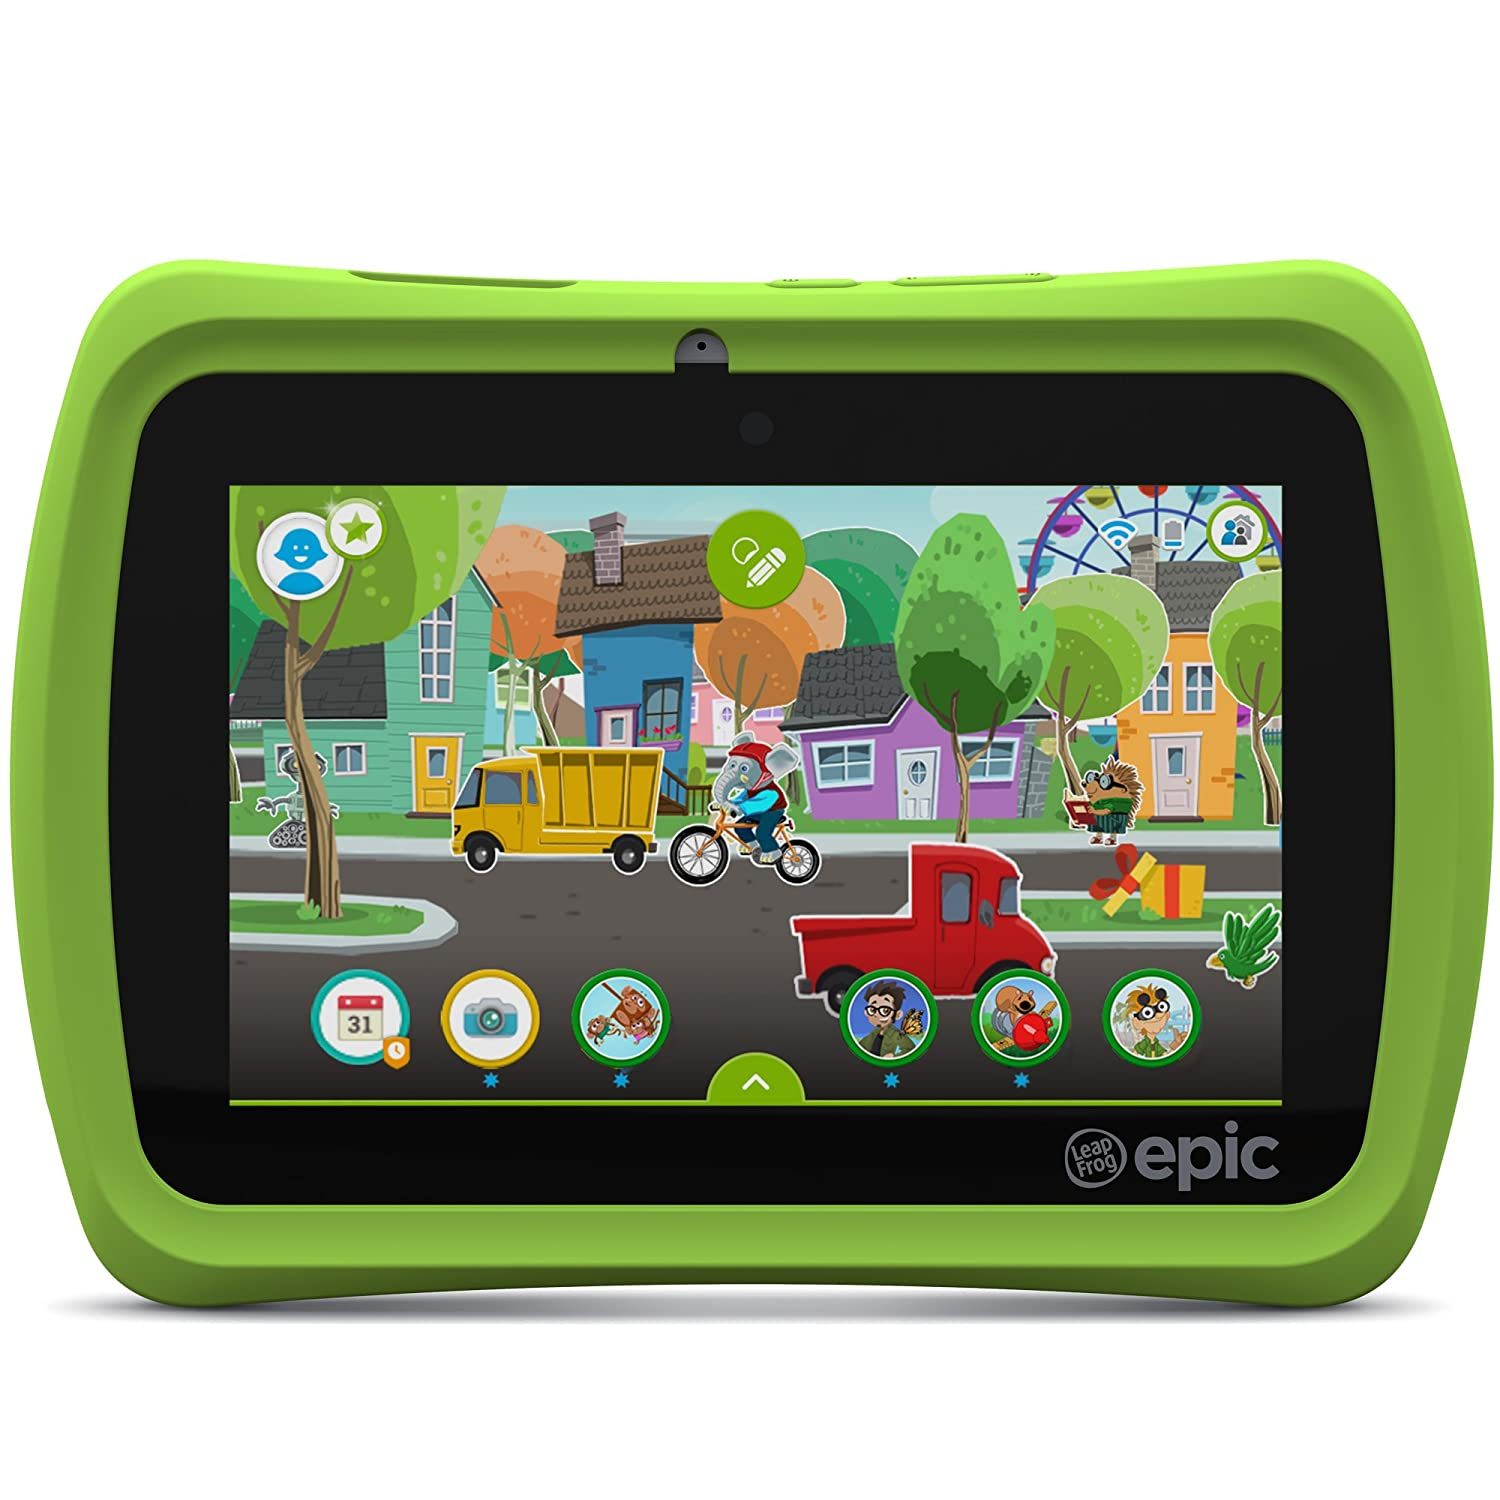 LeapFrog Epic 7 Android Tablet for Kids